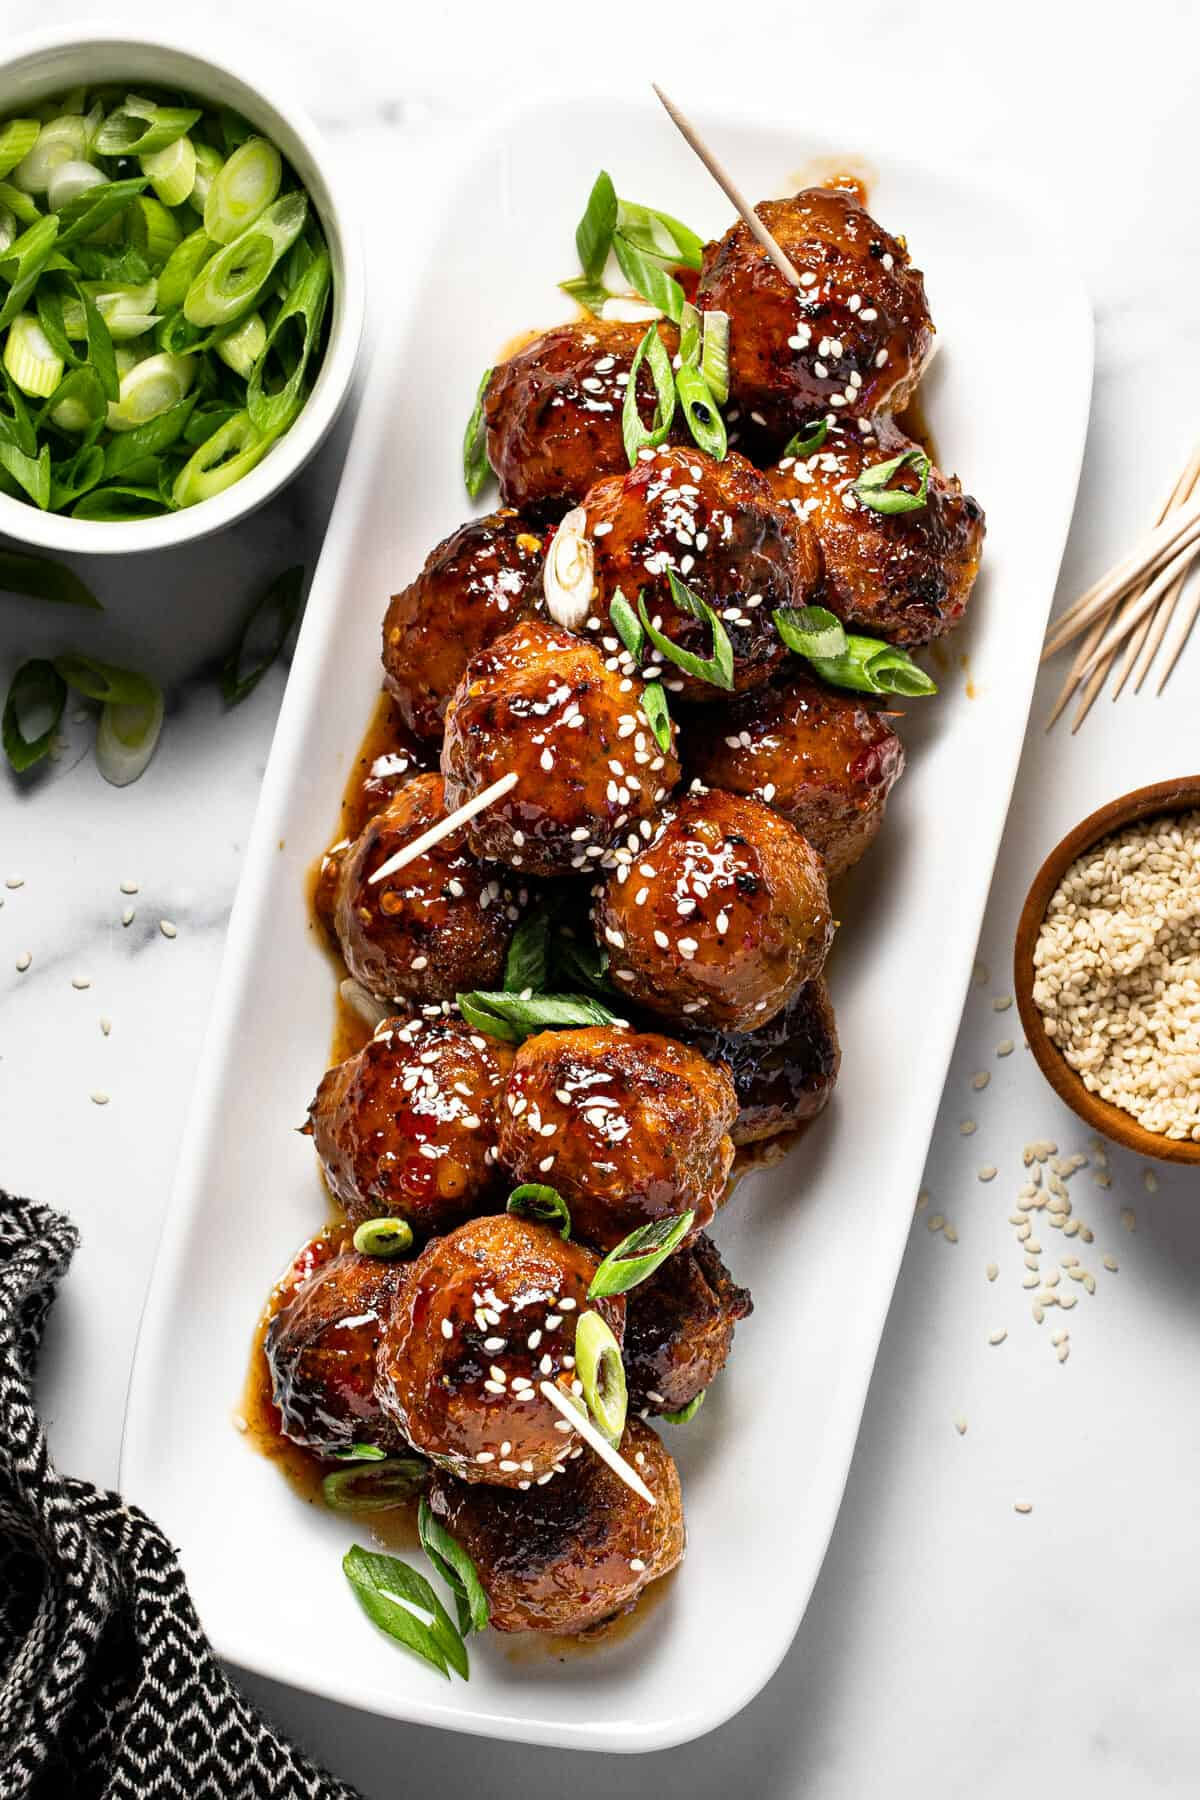 White platter filled with glazed meatballs garnished with green onion